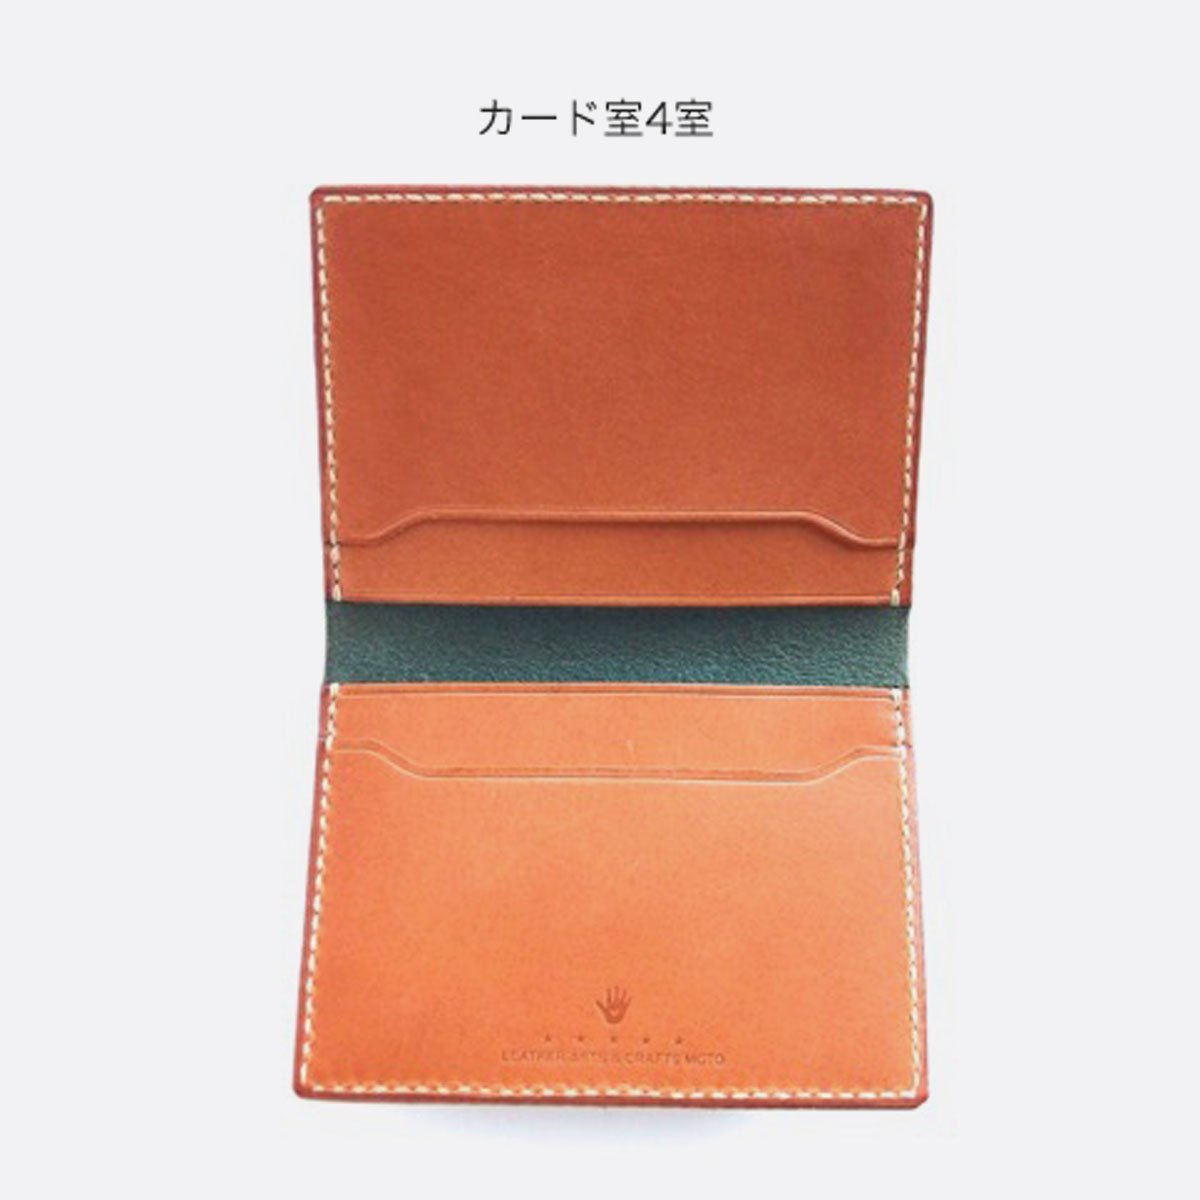 MOTO LEATHER&SILVER MOTO LEATHER CARDCASE CA1(定番5色)4